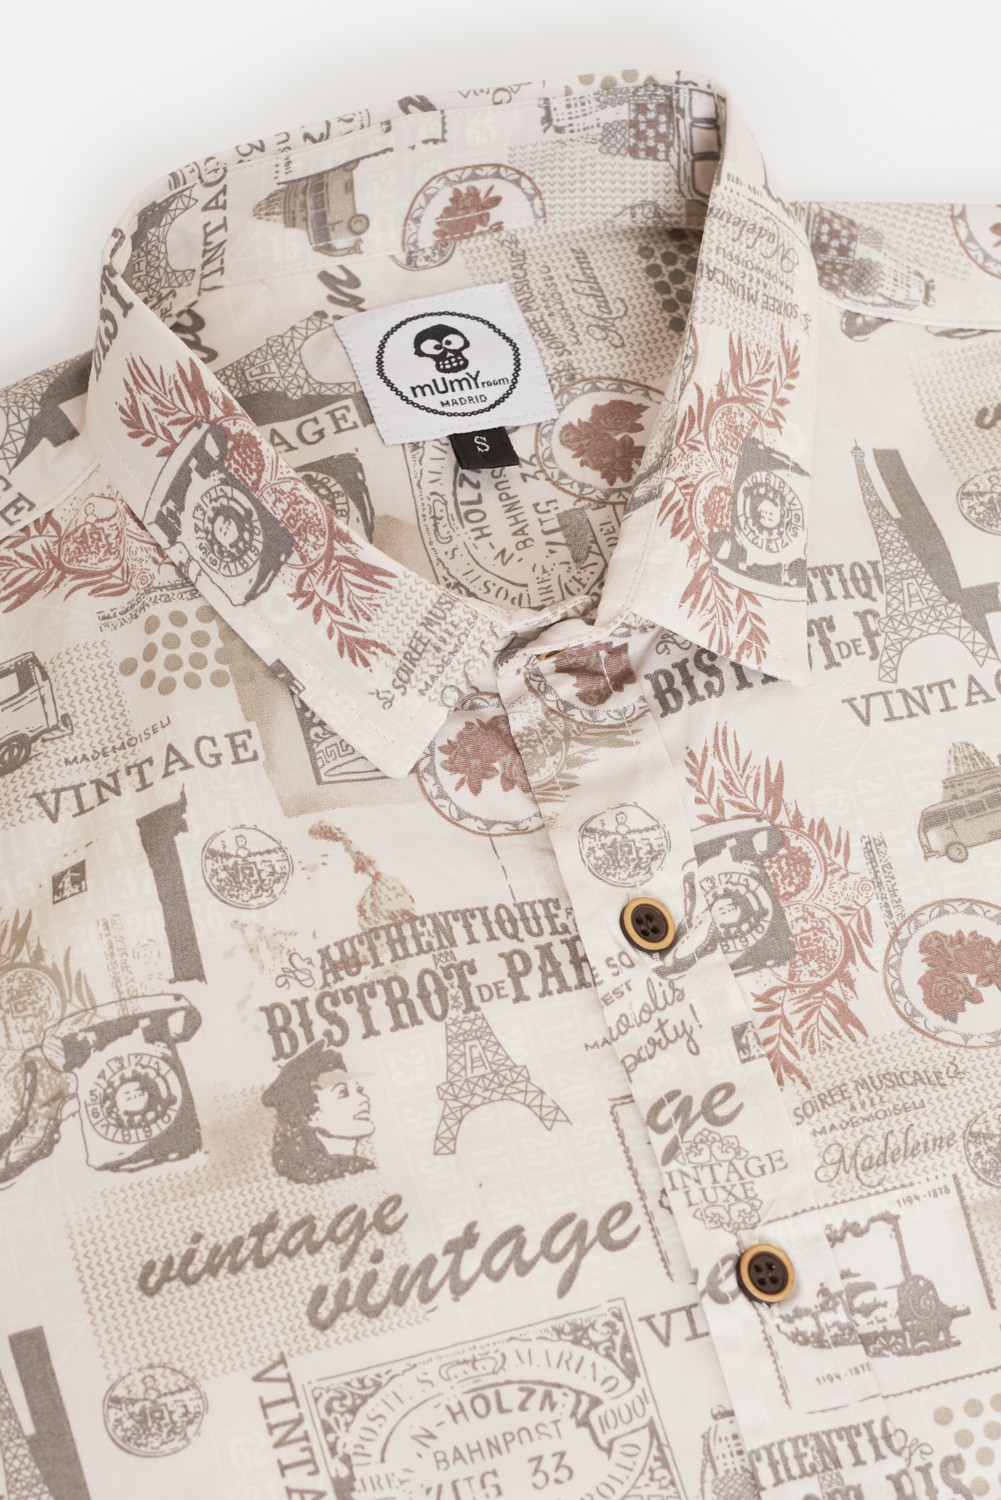 ADULT'S PRINTED SHIRT I LOVE VINTAGE